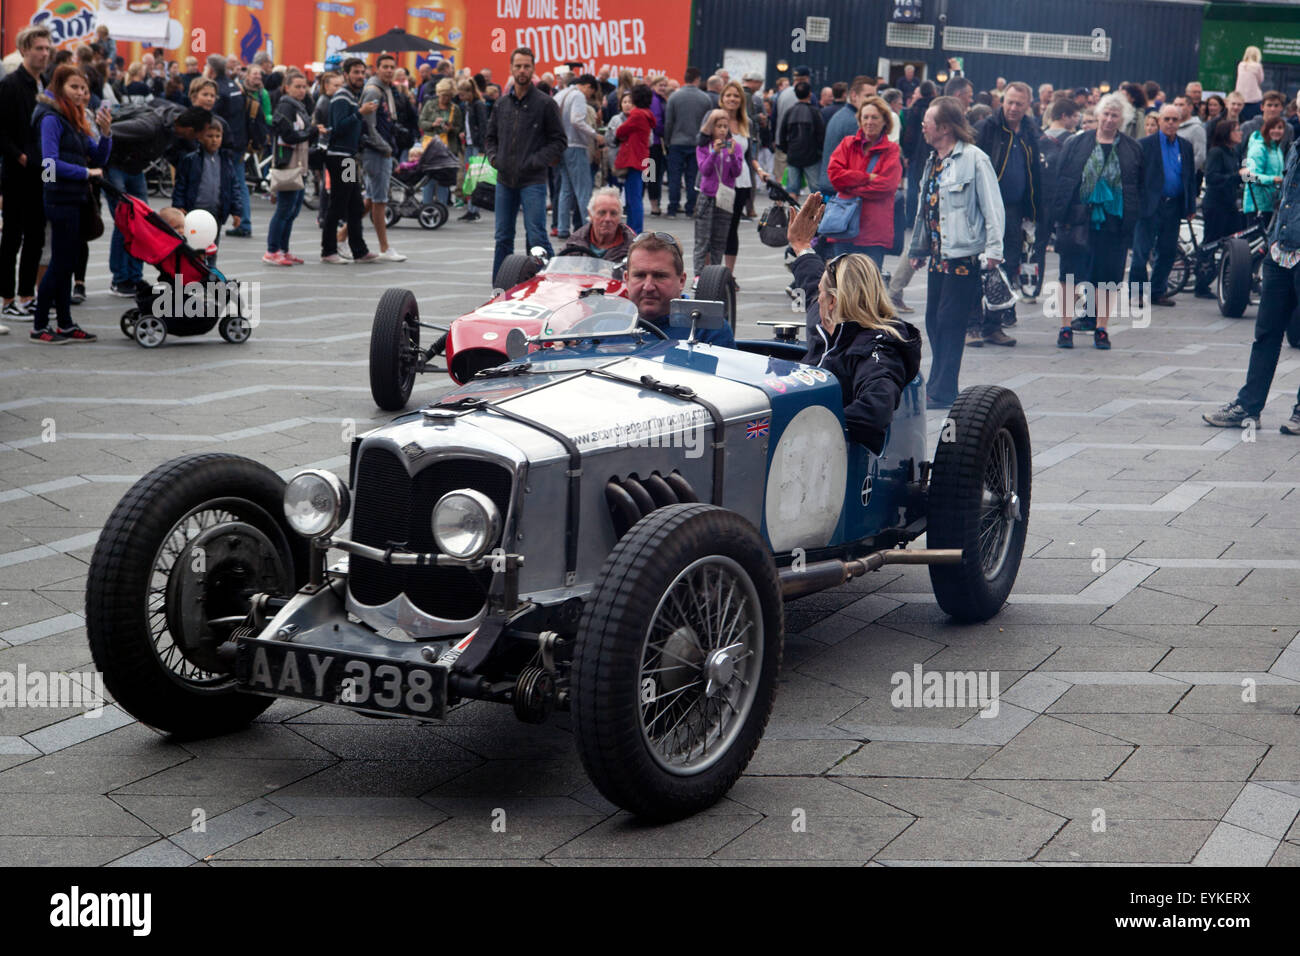 Copenhagen, Denmark, July 31st, 2015. An old race cars drives away ...